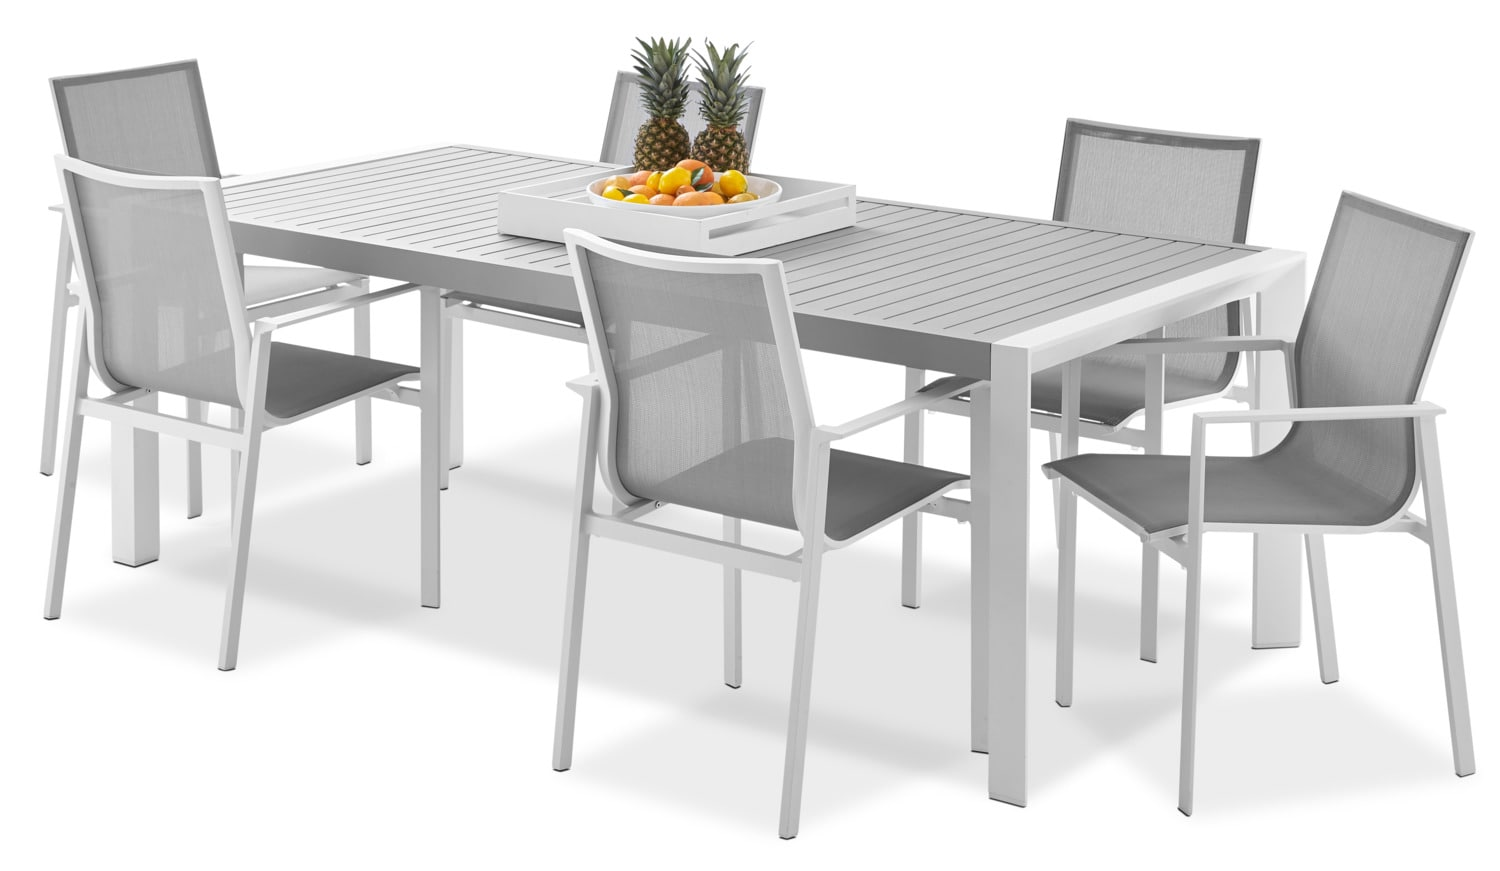 Biscayne 9-Piece Outdoor Dining Set - Light Grey